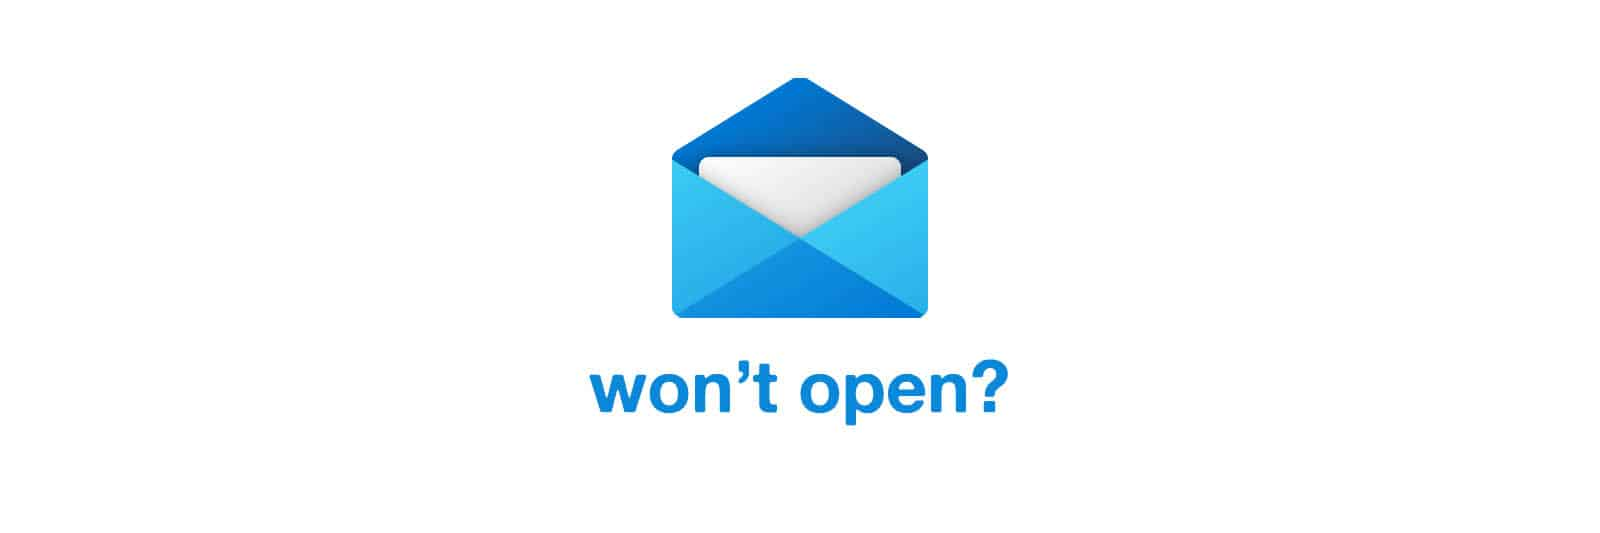 mail-wont-open